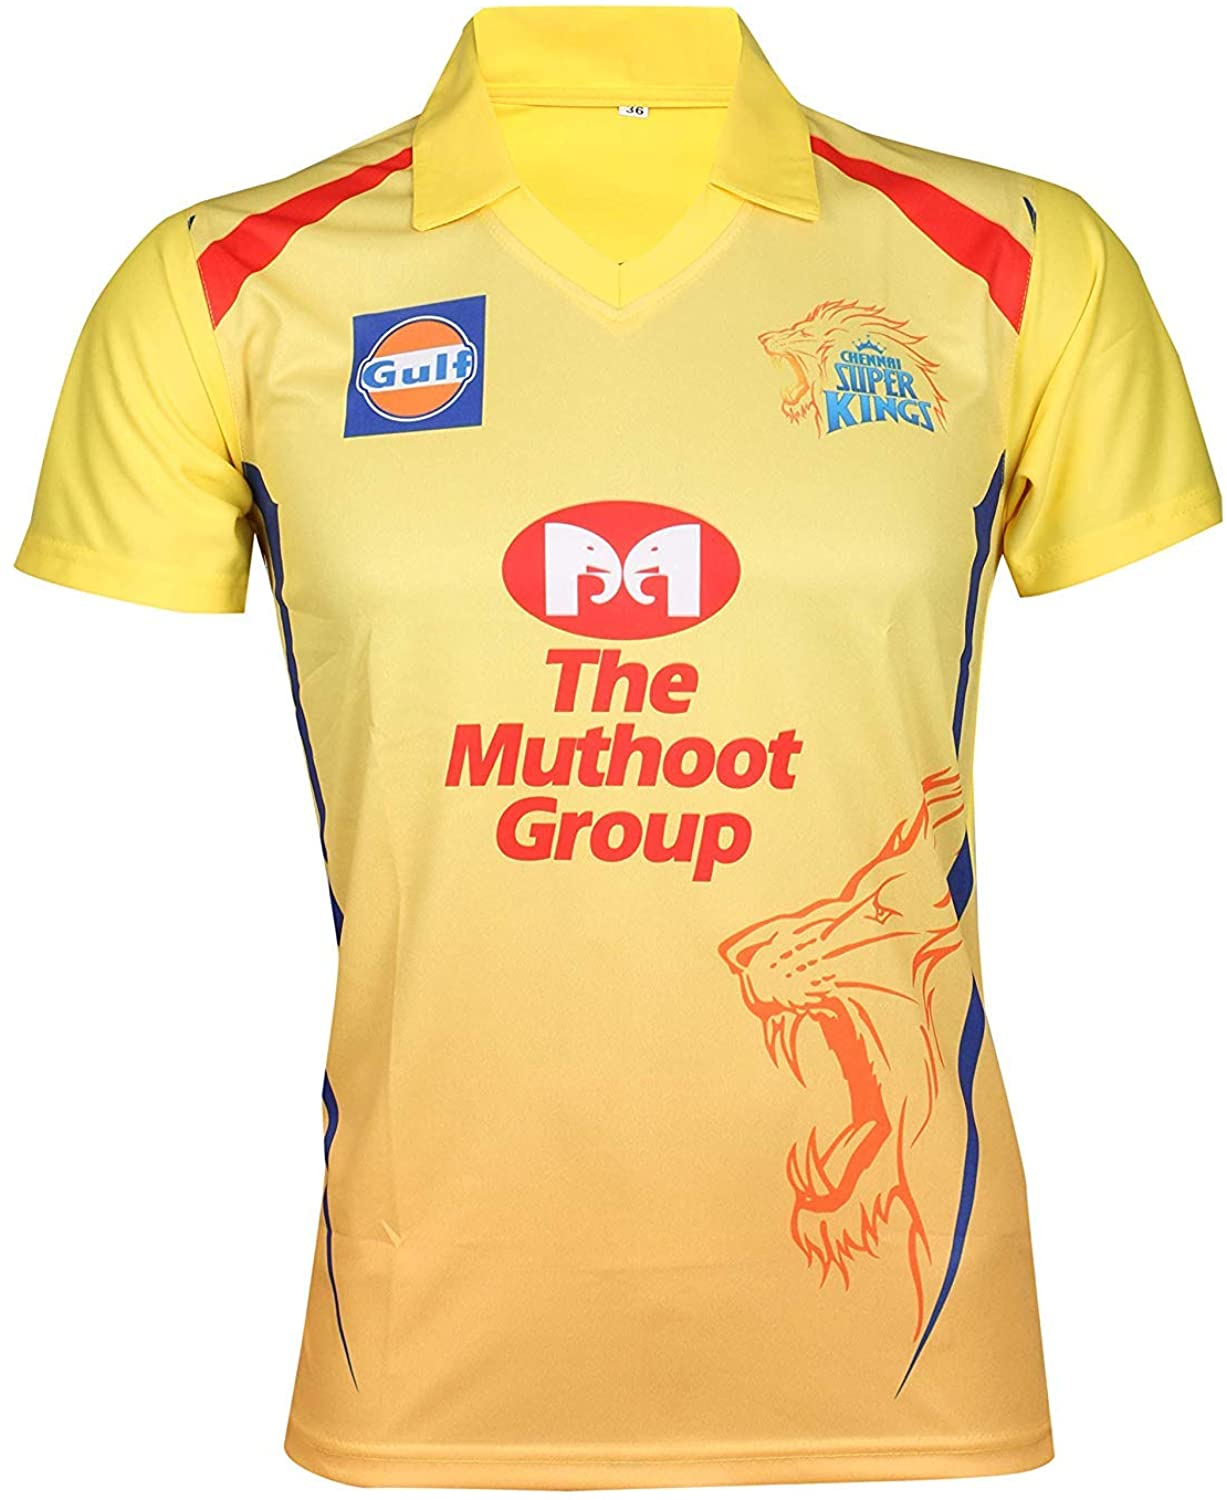 KD Cricket IPL Custom Jersey Supporter Jersey T-Shirt 2020 with Your Choice Name and Number Print (CSK,44)